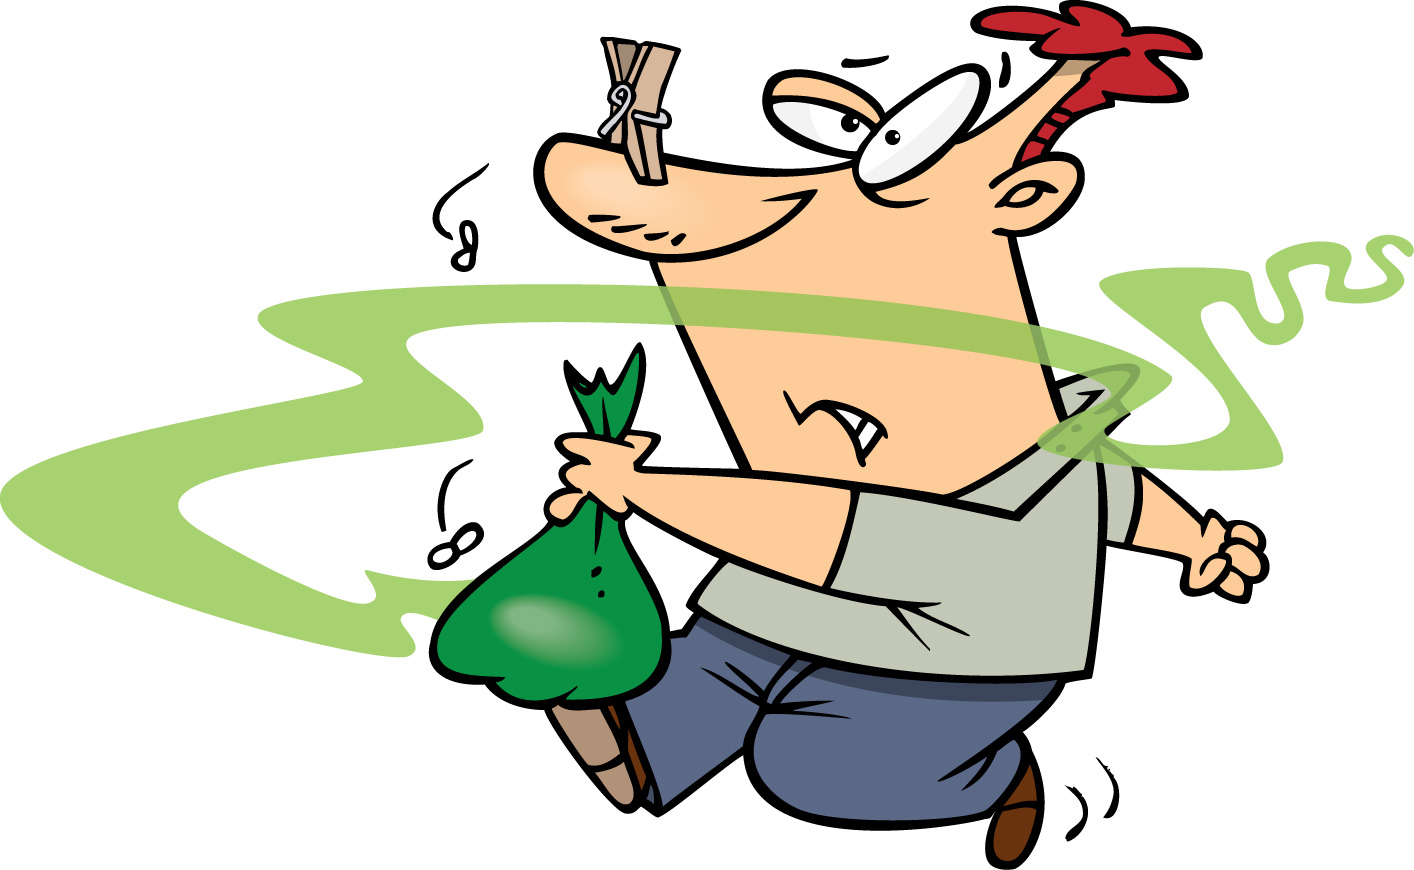 Garbage clipart bad odor. April commongunsense smelly